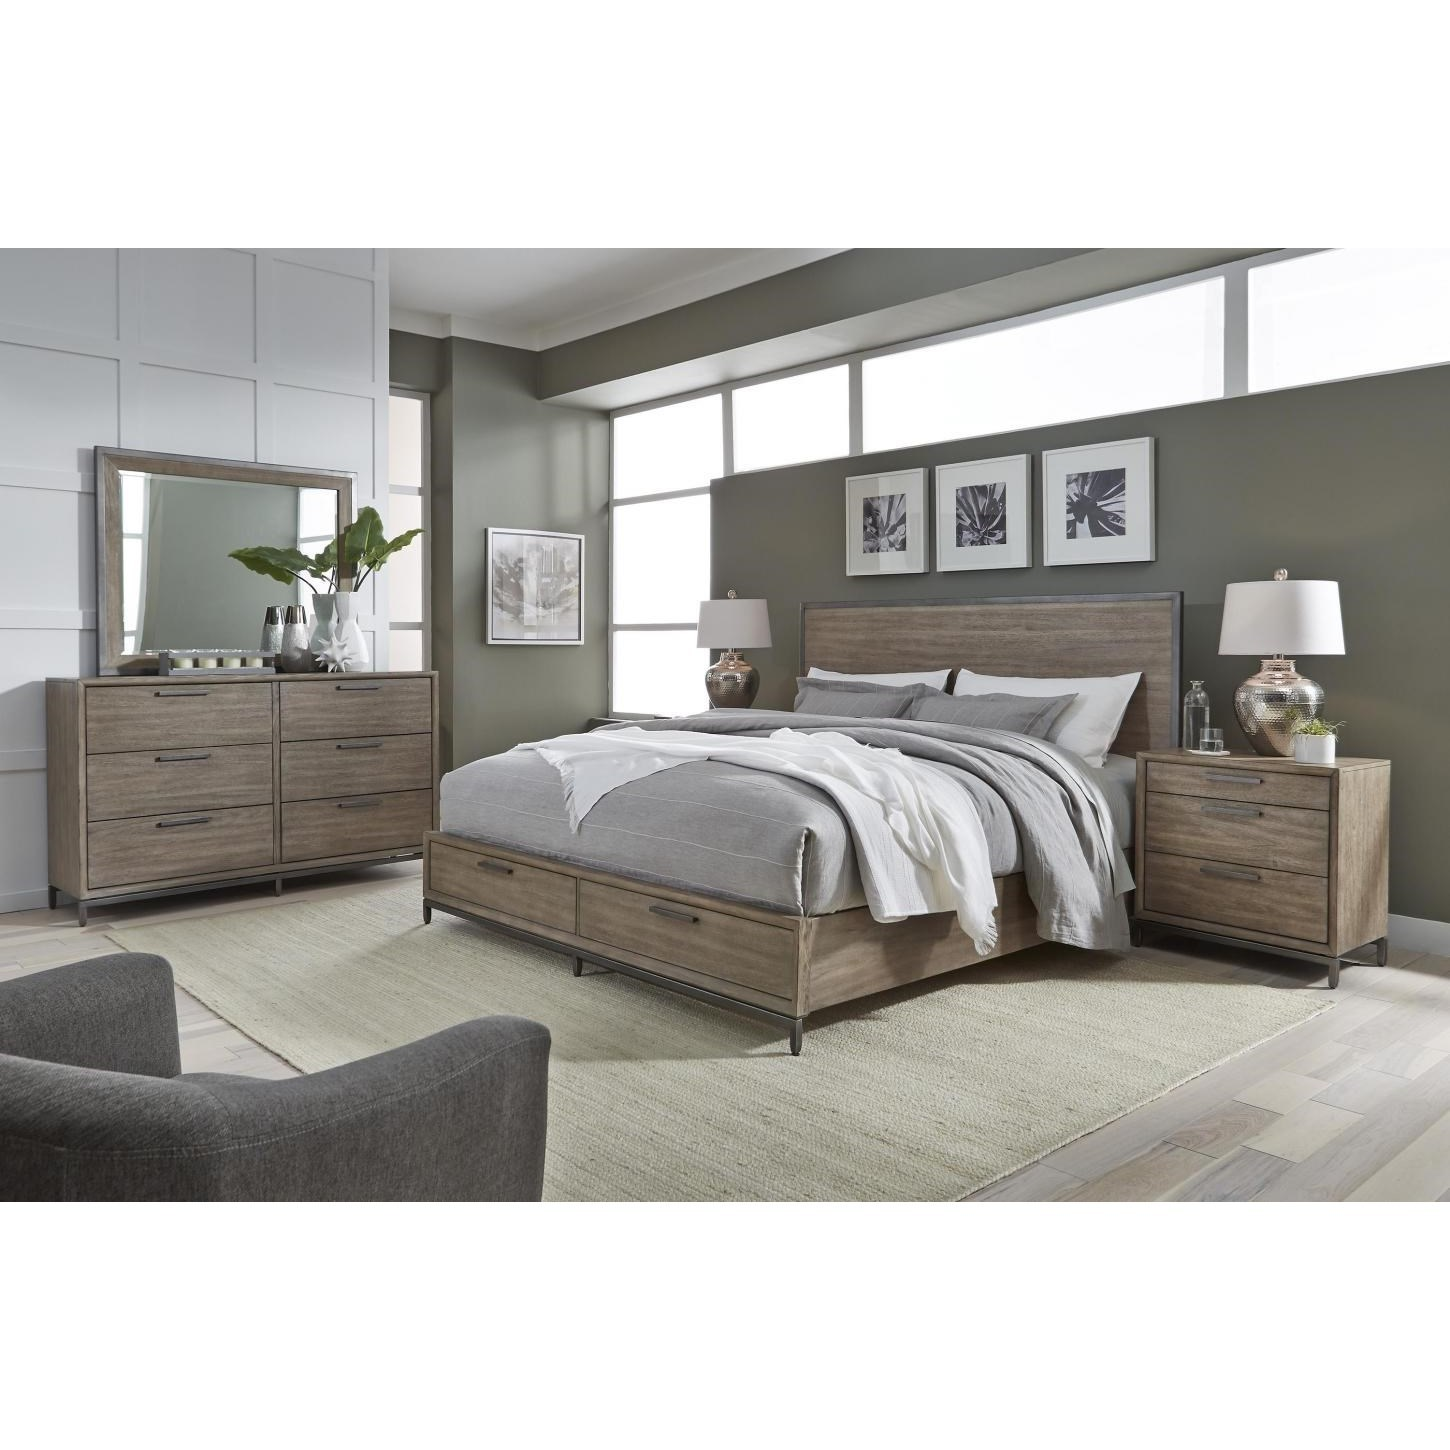 1287 Queen Bedroom Group by Aspenhome at Fashion Furniture